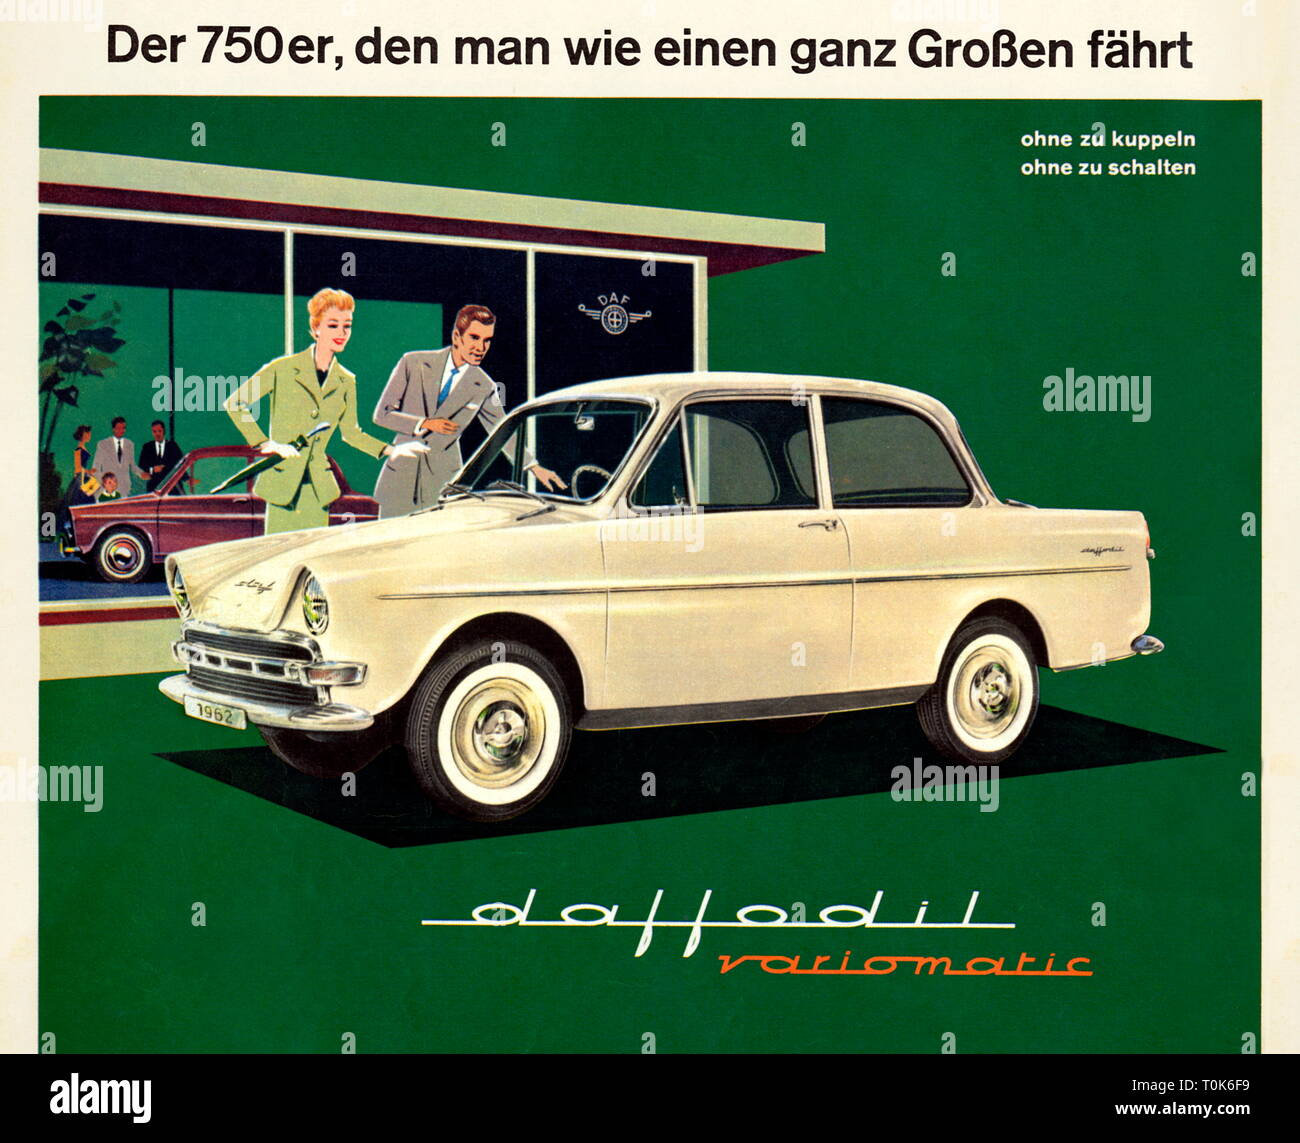 advertising, car, daf, edition daffodil variomatic, Dutch small car, four-seater, automatic transmission, 30 horsepower, engine 750 cubic centimetre, four-stroke engine, maximum speed 105 kmph, original price DM 4290 for basic version, build from 1961 until 1963, Germany, 1961, Additional-Rights-Clearance-Info-Not-Available - Stock Image